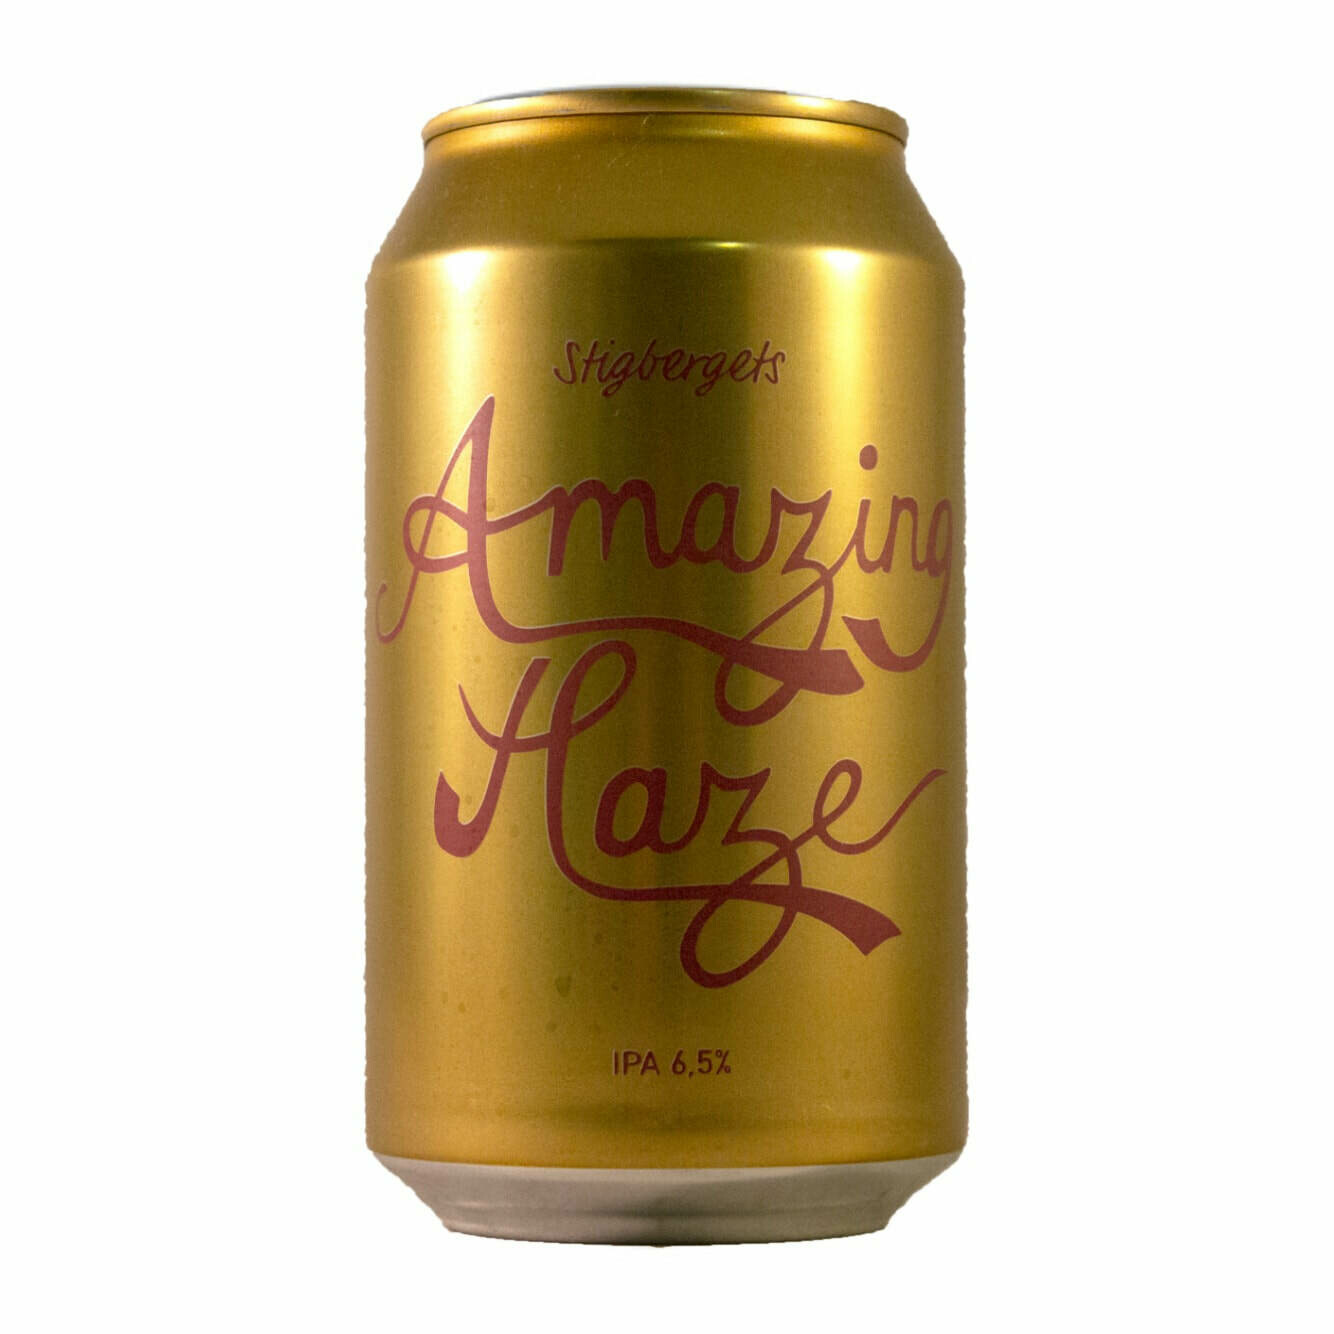 Stigbergets Amazing Haze CANS 33cl